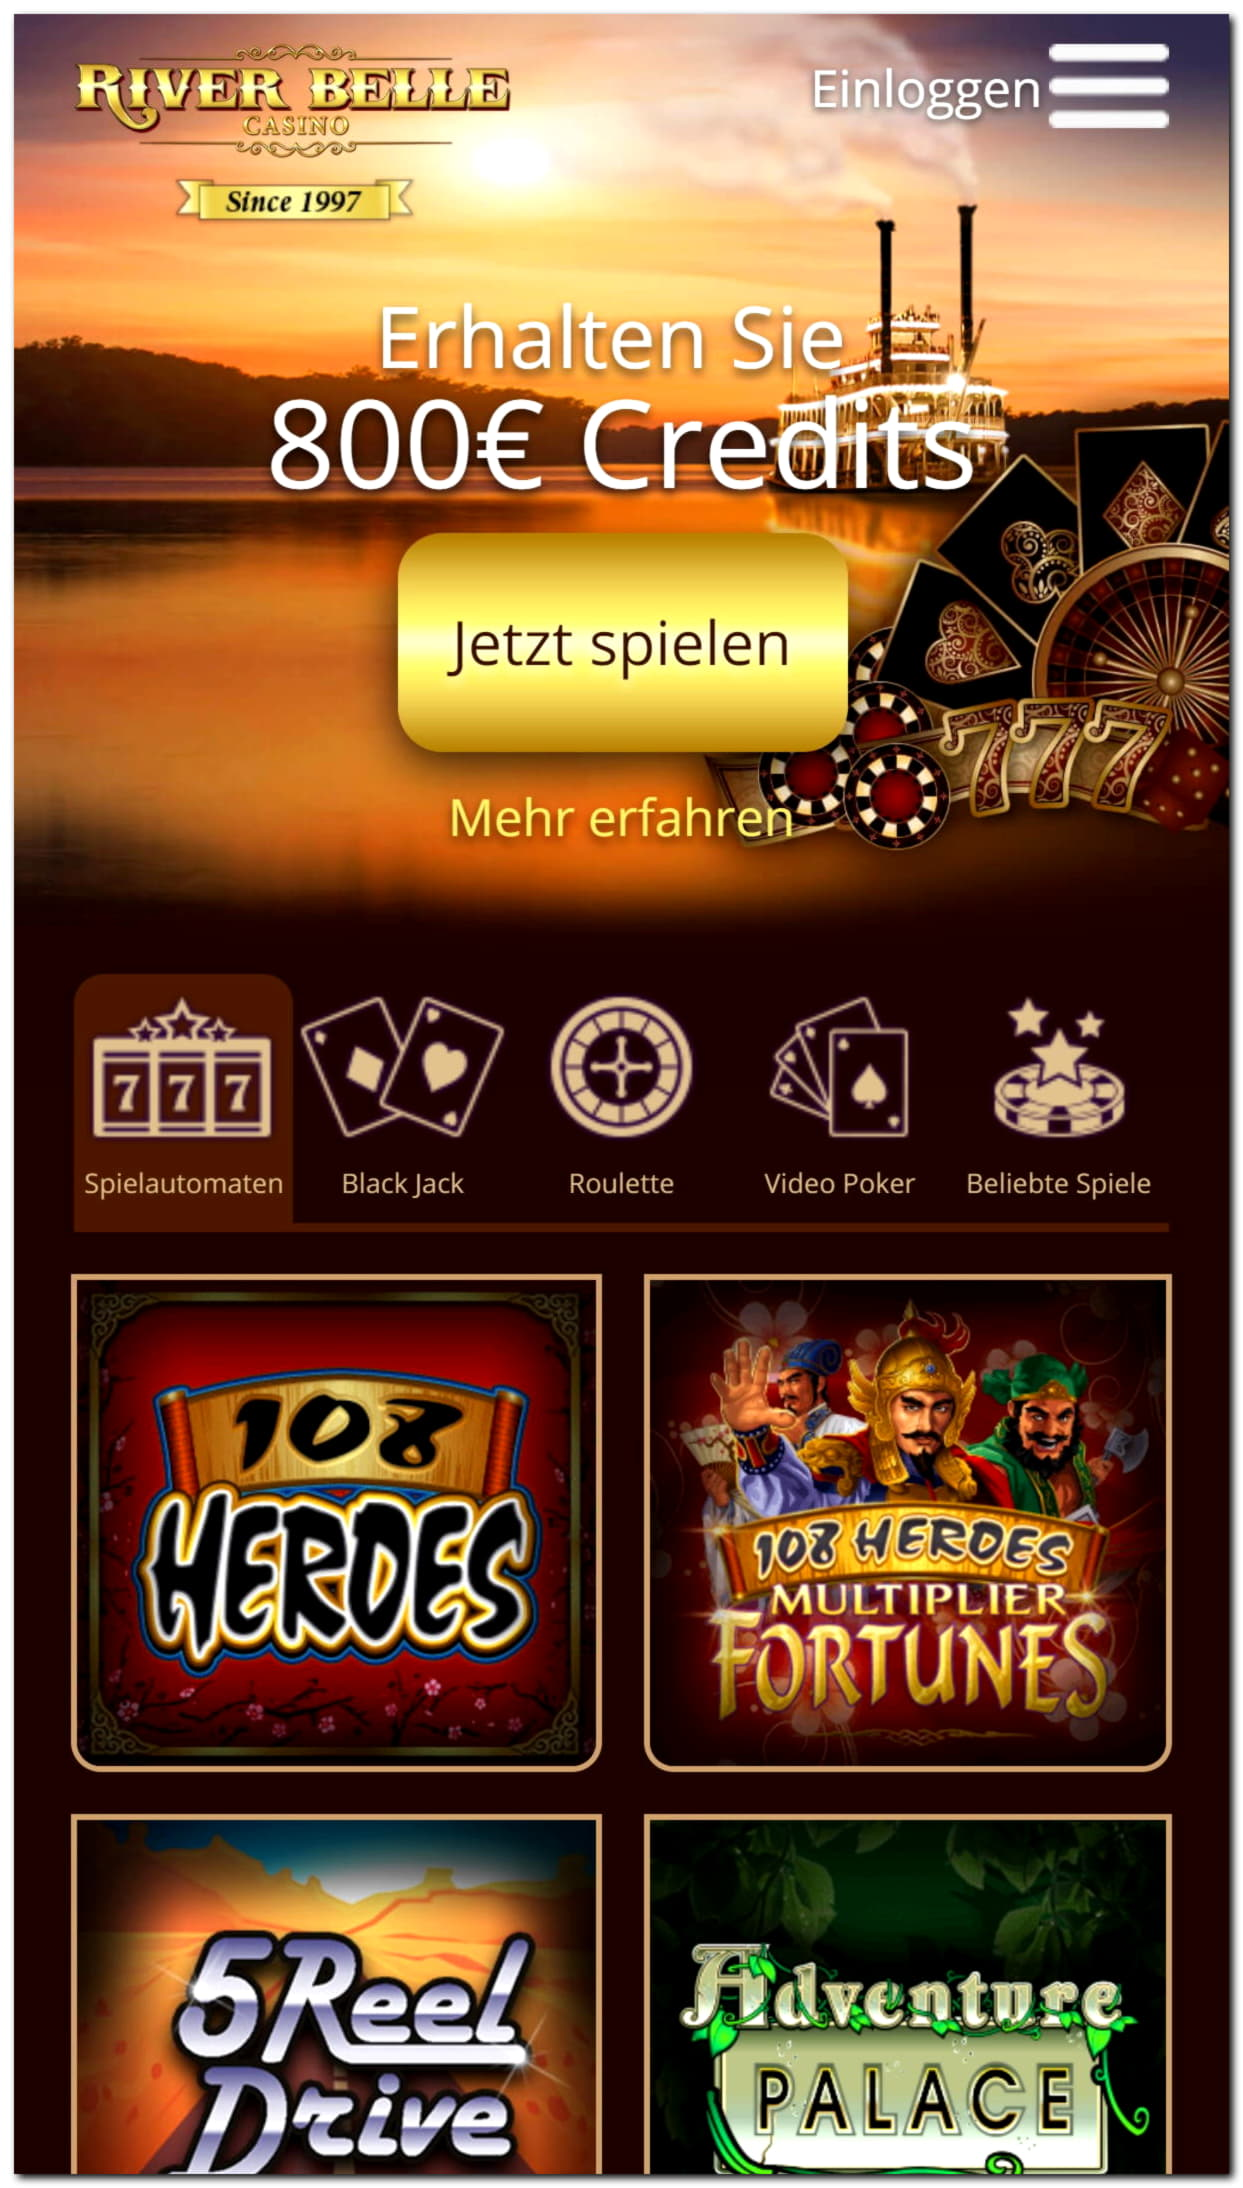 €640 Bet At Home Casinoの無料カジノチップ